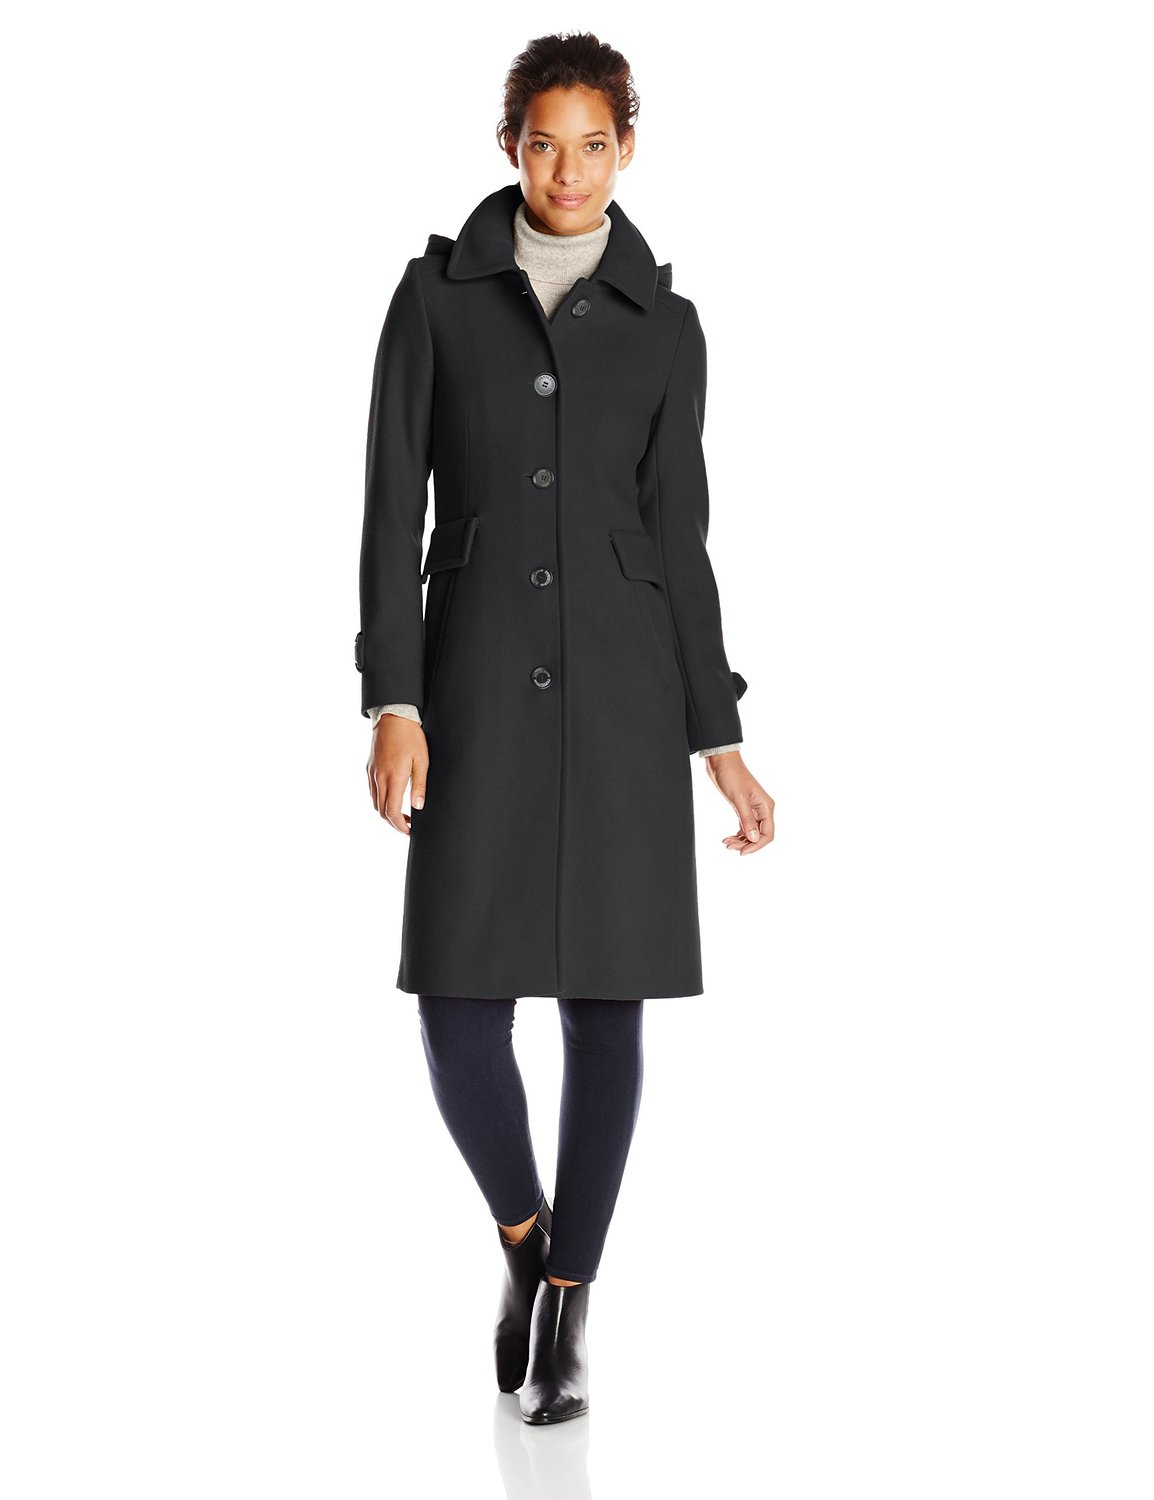 Blend maxi coat with detachable hood at amazon women's coats shop